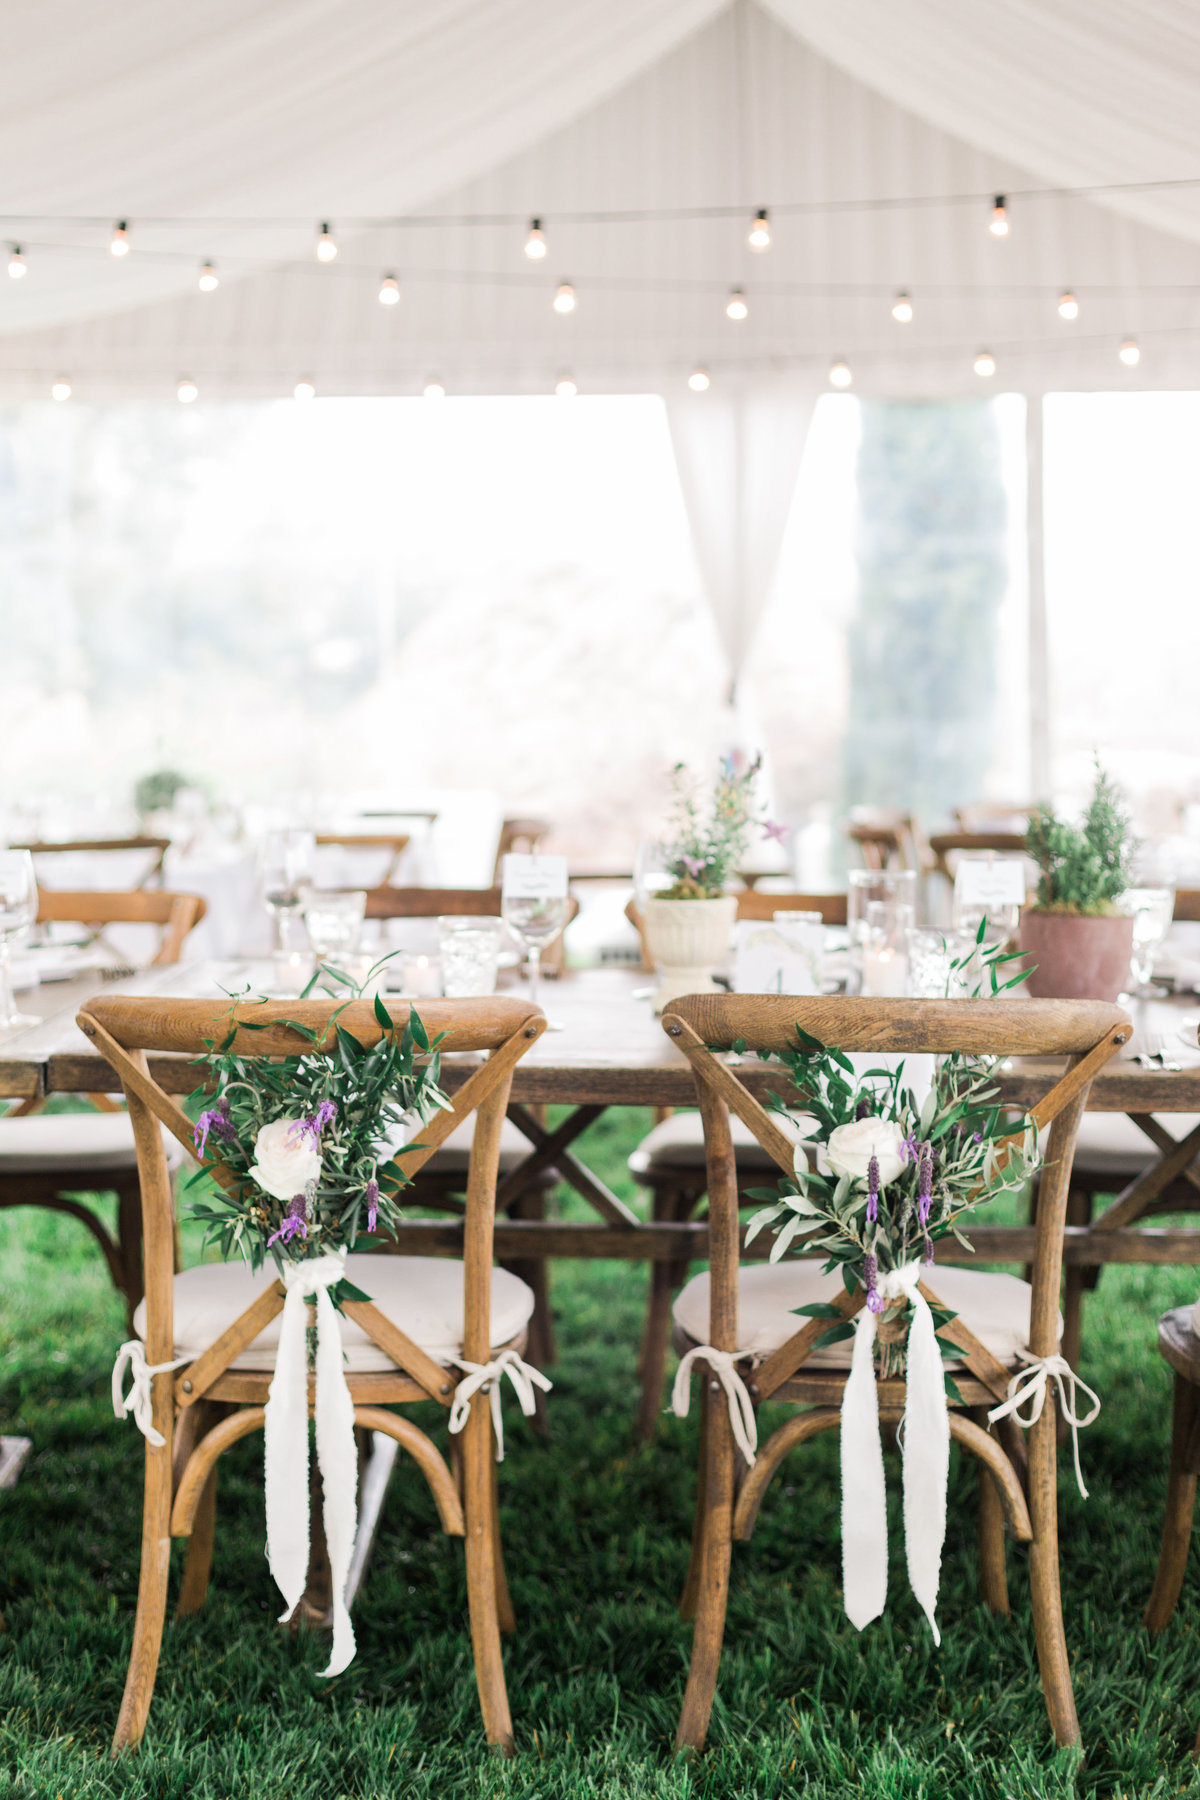 Palihouse_Cielo_Farms_Malibu_Rustic_Wedding_Valorie_Darling_Photography - 89 of 107